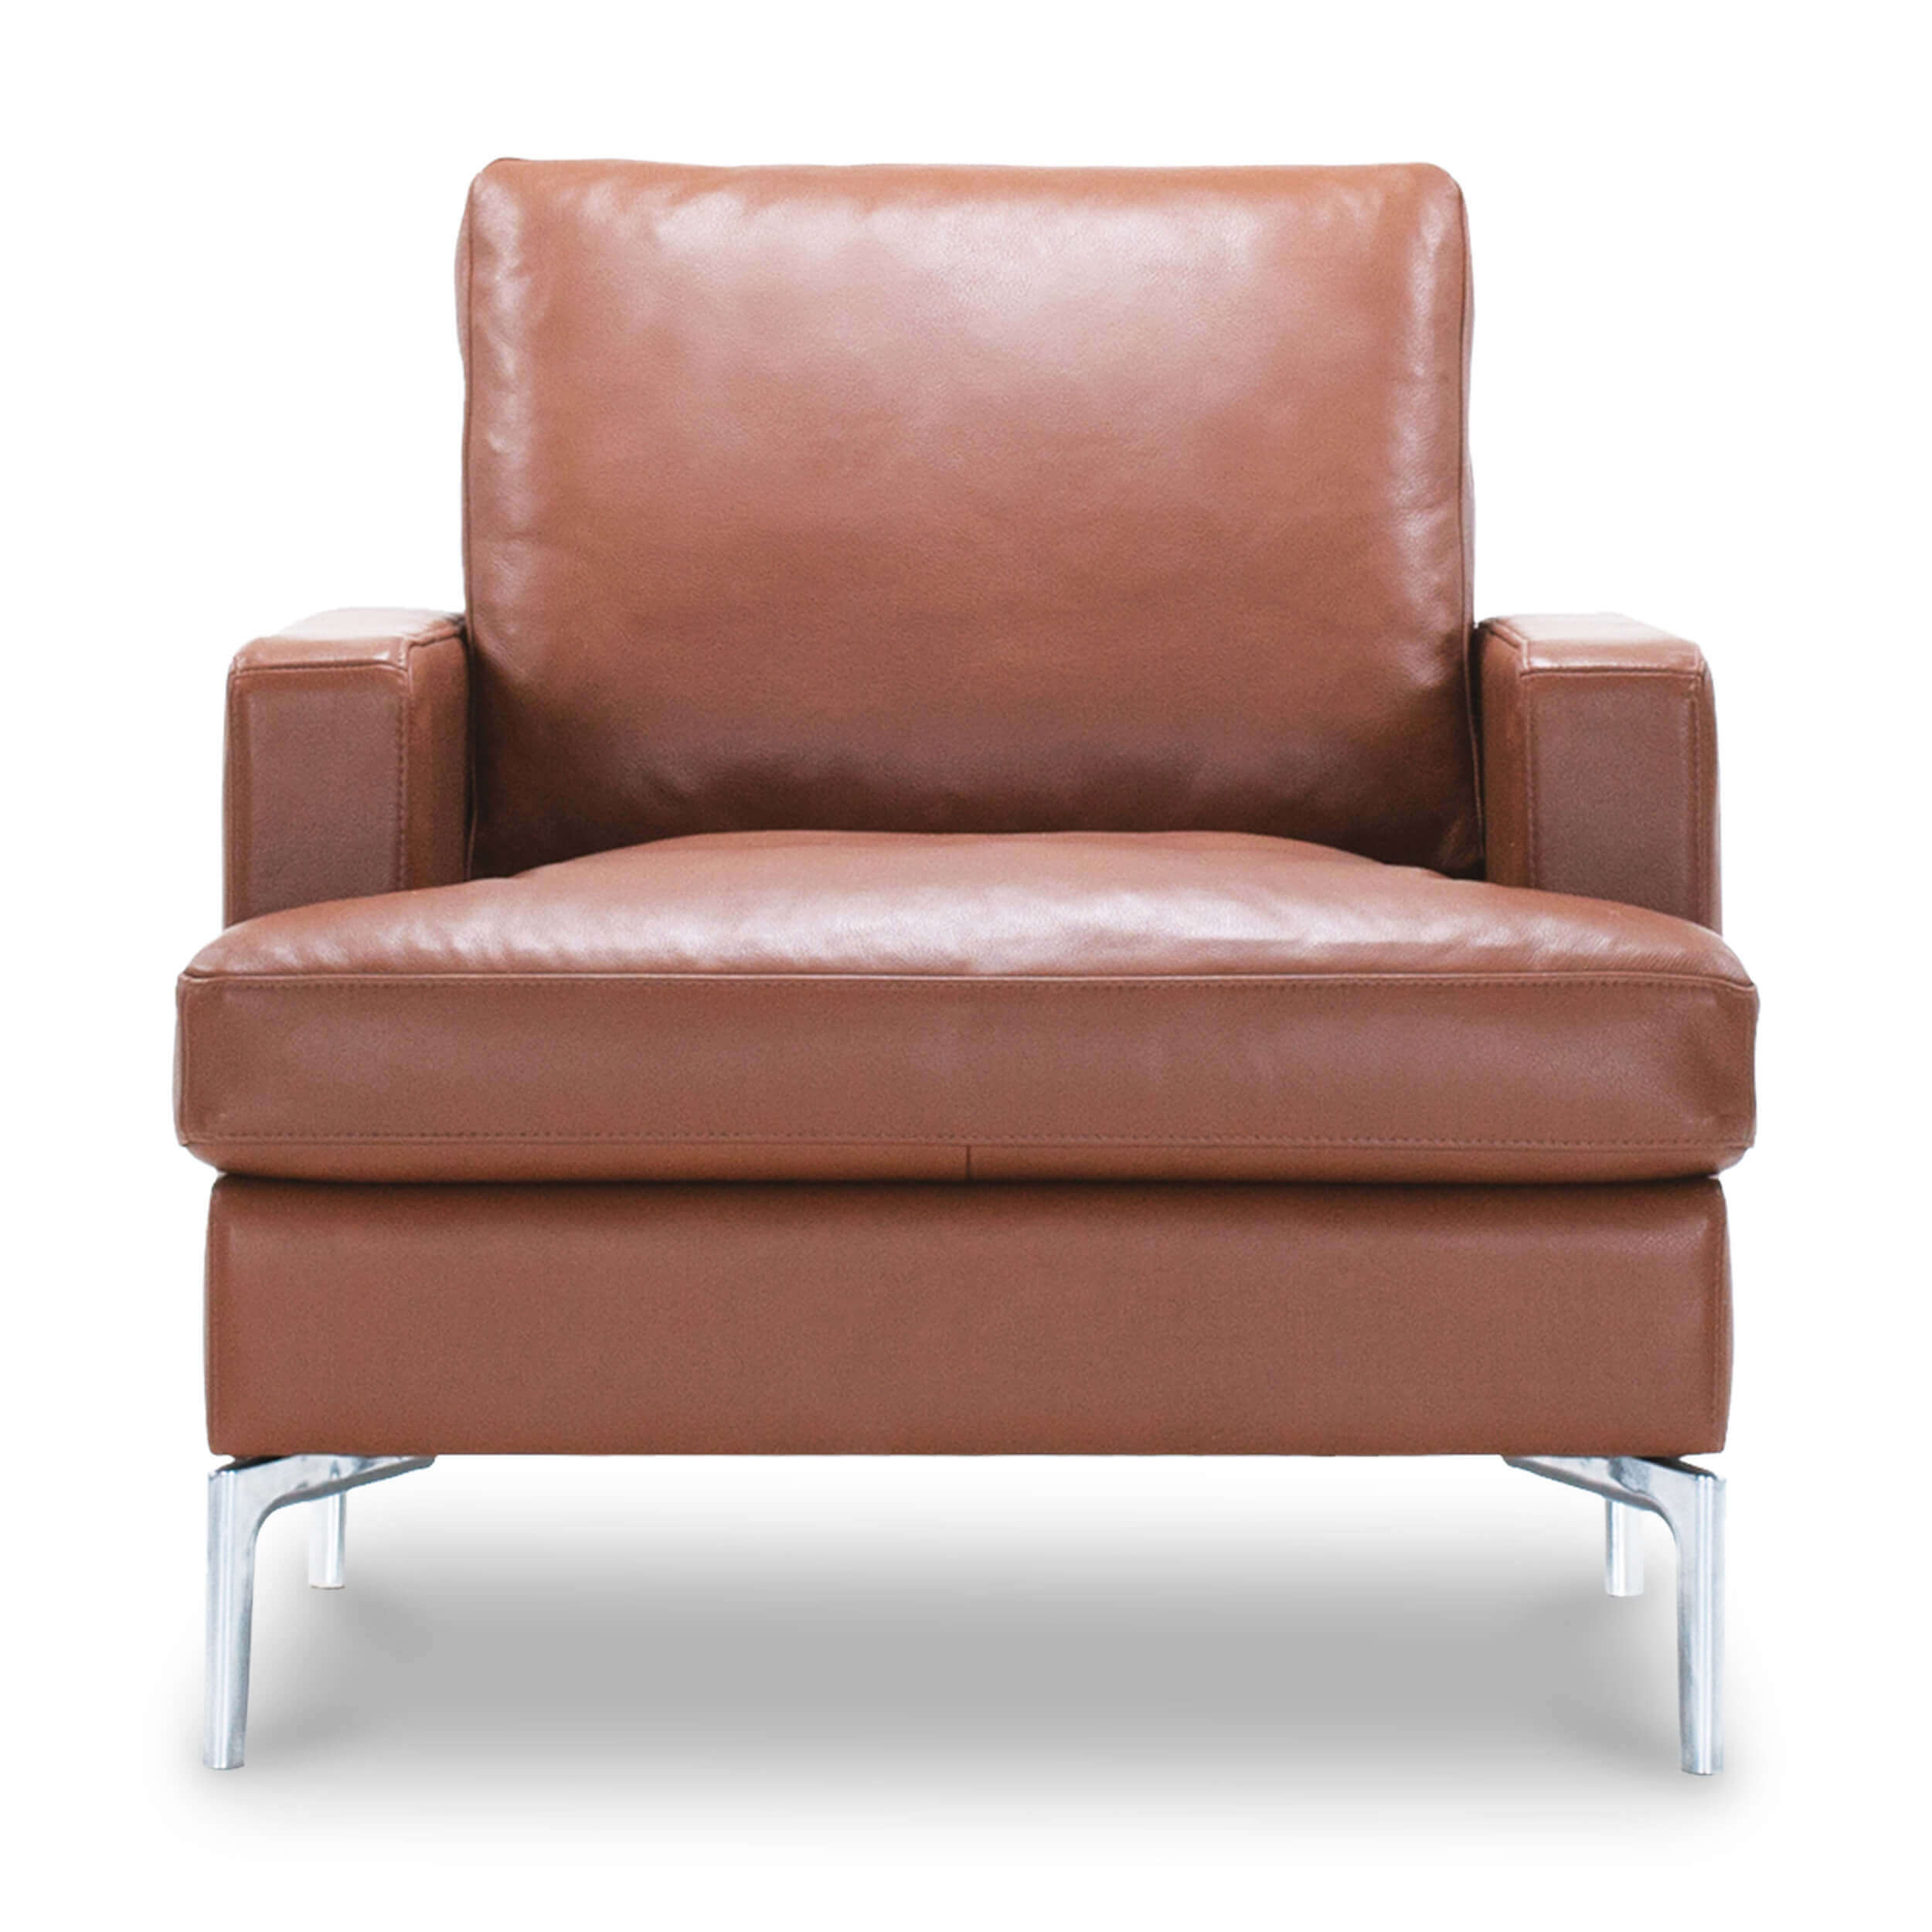 Sensational Eve Chair Leather Caraccident5 Cool Chair Designs And Ideas Caraccident5Info